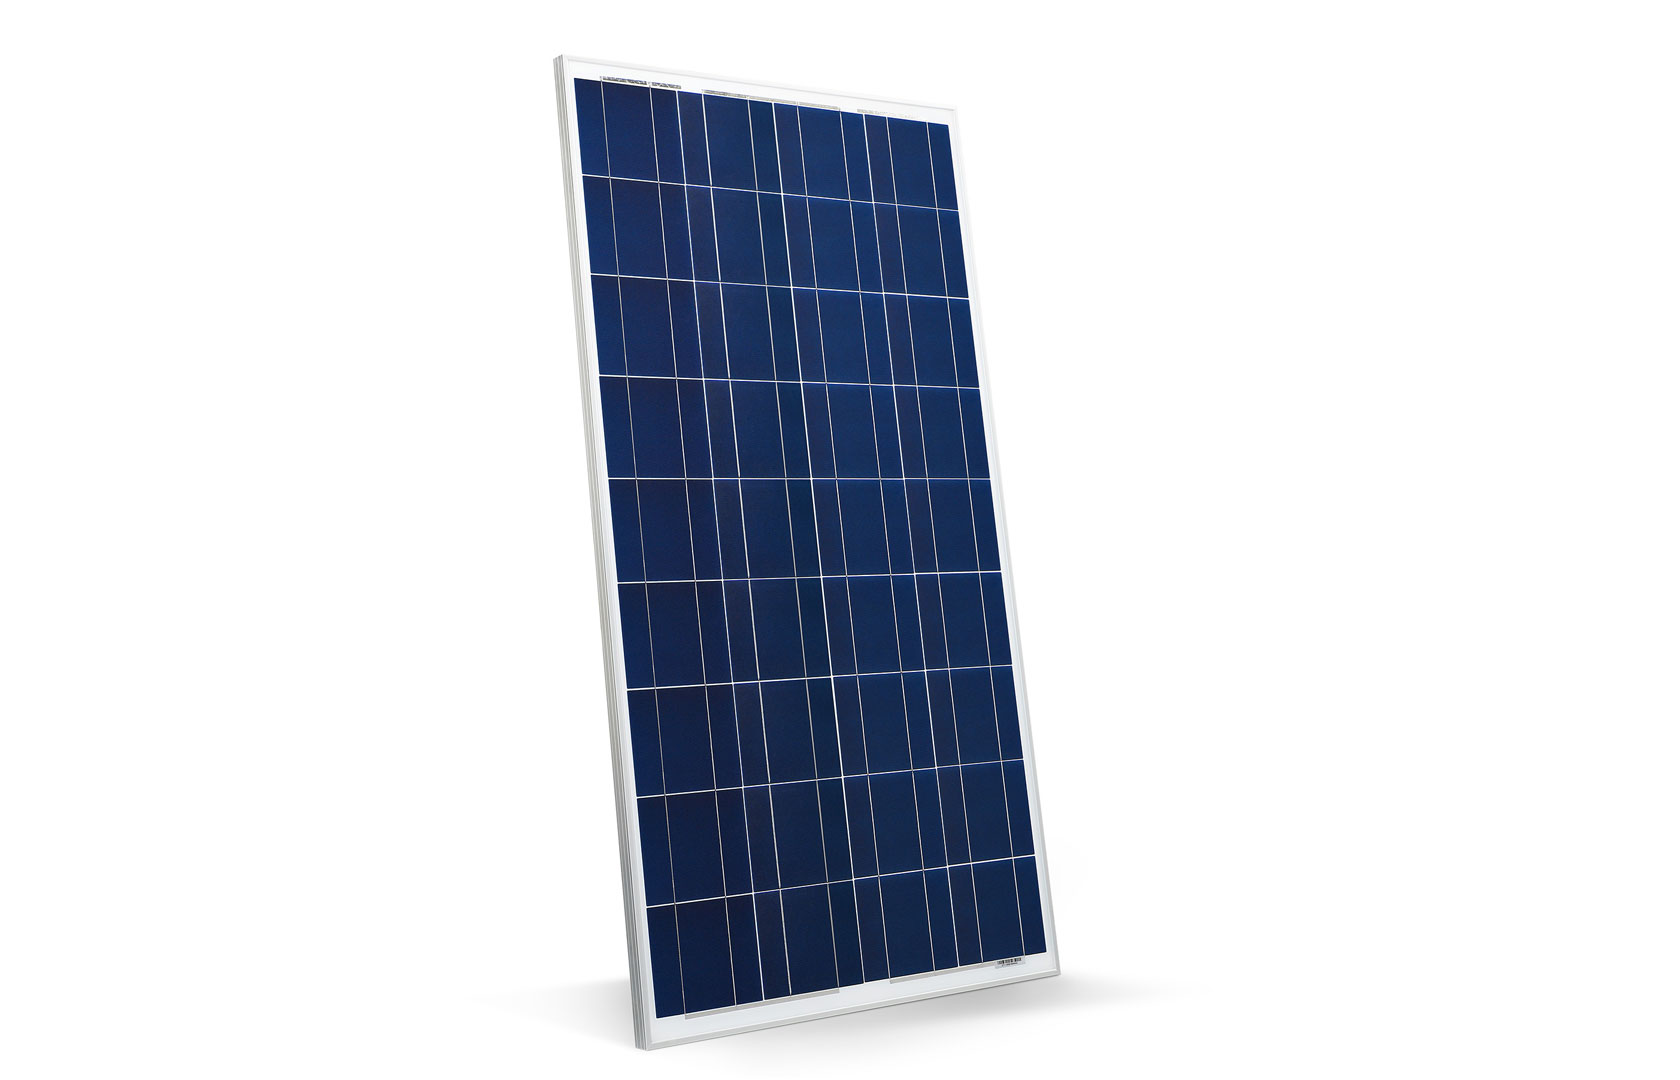 SP-FG-120W Watt Solar Panel